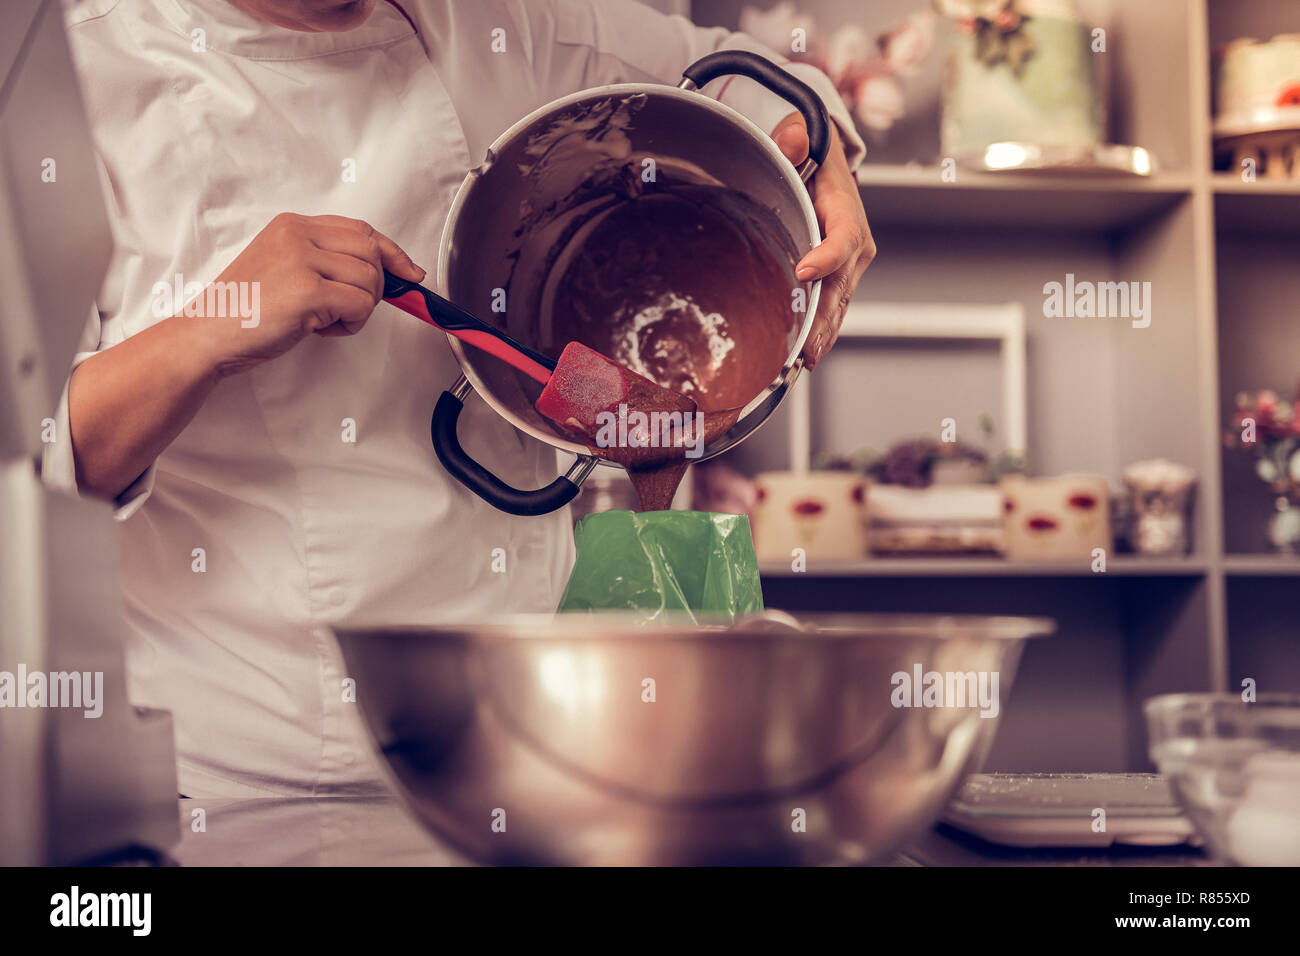 Cooking process. Nice professional cook putting the dough in the pastry bag while preparing the cake - Stock Image